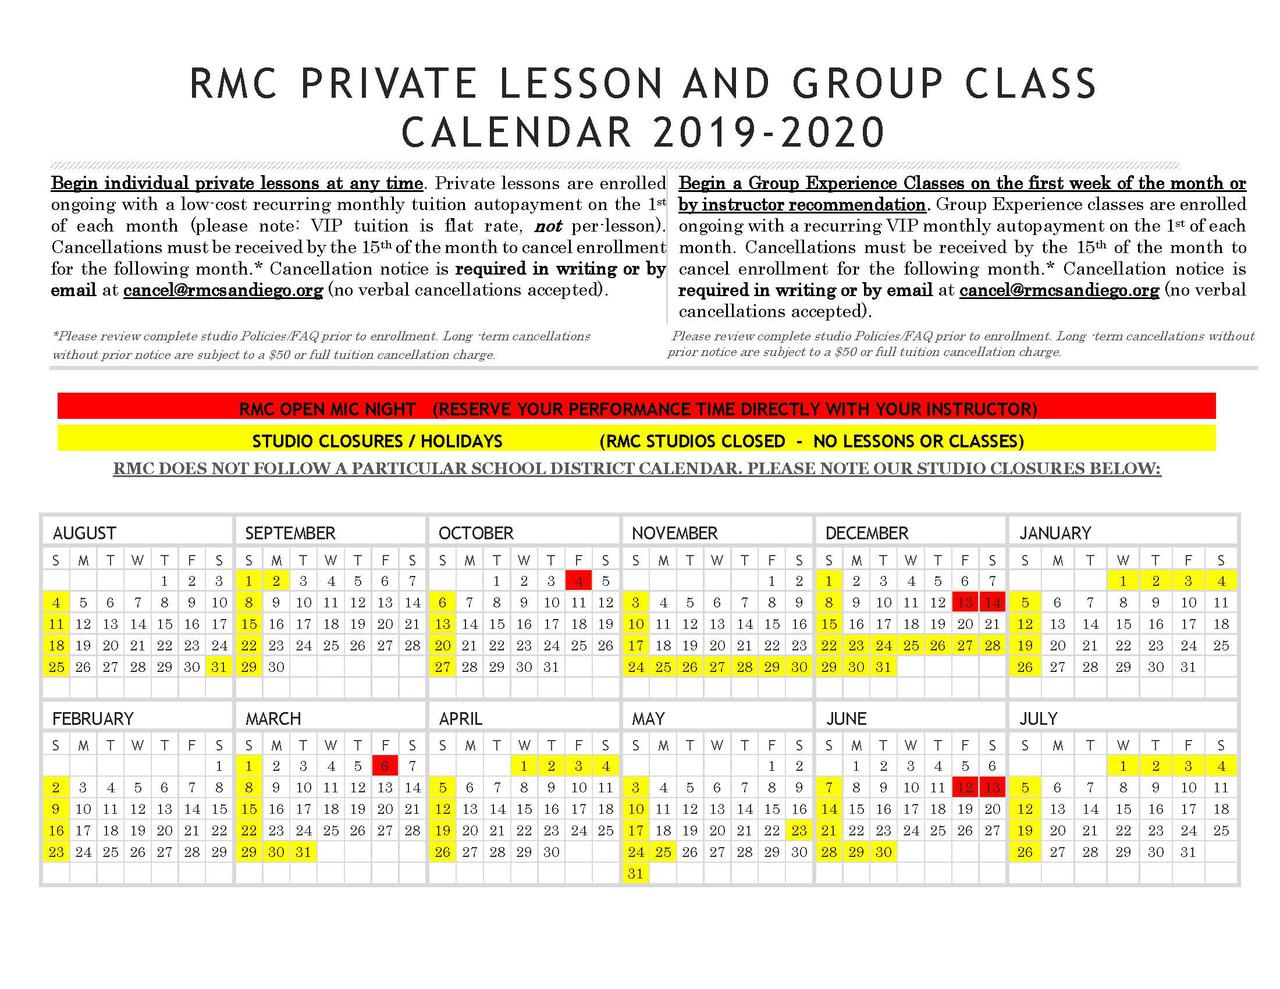 rmc private lesson and group class calendar 2019 2020.jpg